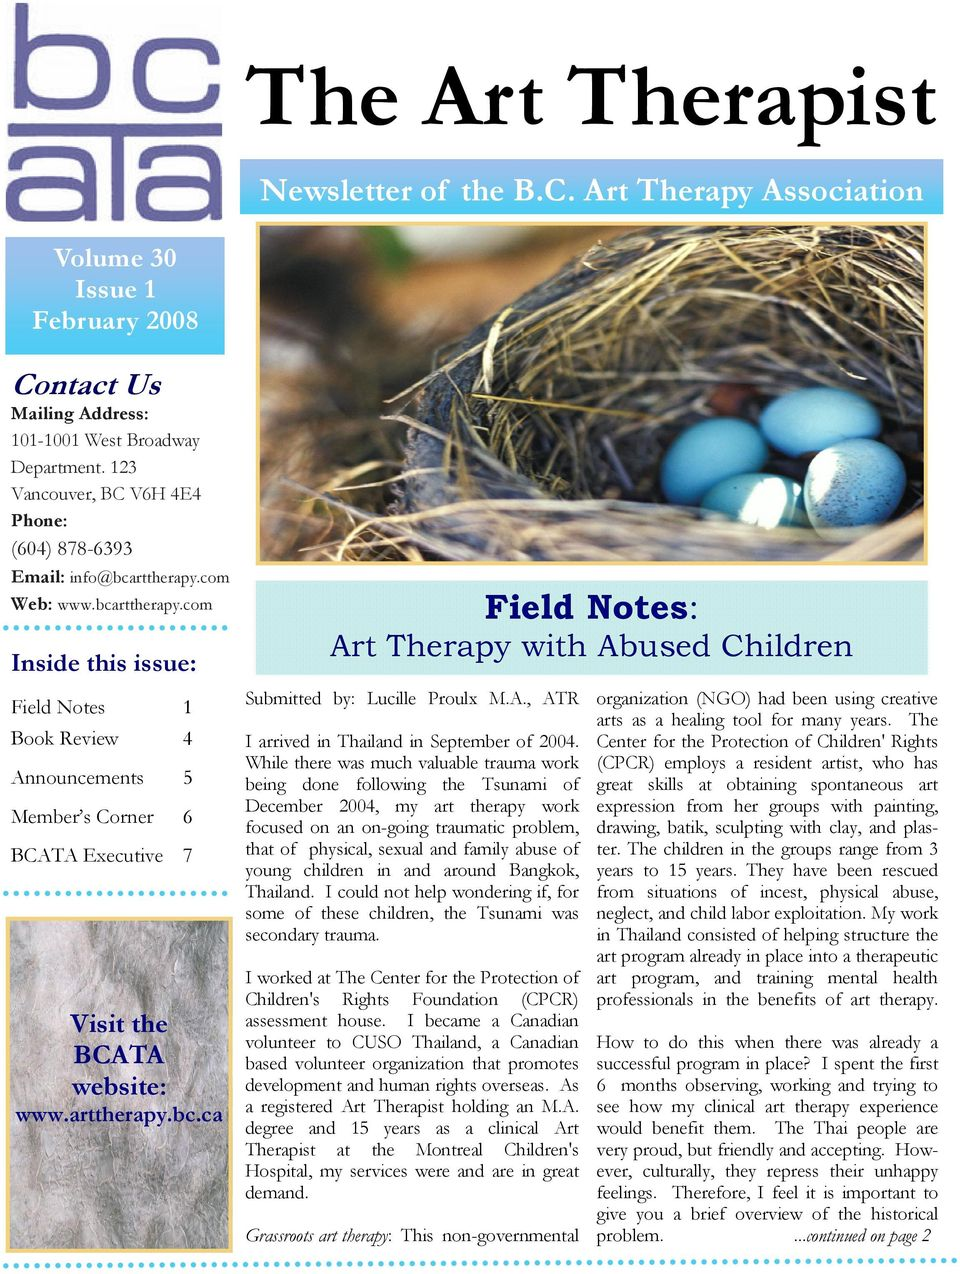 com Web: www.bcarttherapy.com Inside this issue: Field Notes 1 Book Review 4 Announcements 5 Member s Corner 6 BCATA Executive 7 Visit the BCATA website: www.arttherapy.bc.ca Field Notes: Art Therapy with Abused Children Submitted by: Lucille Proulx M.